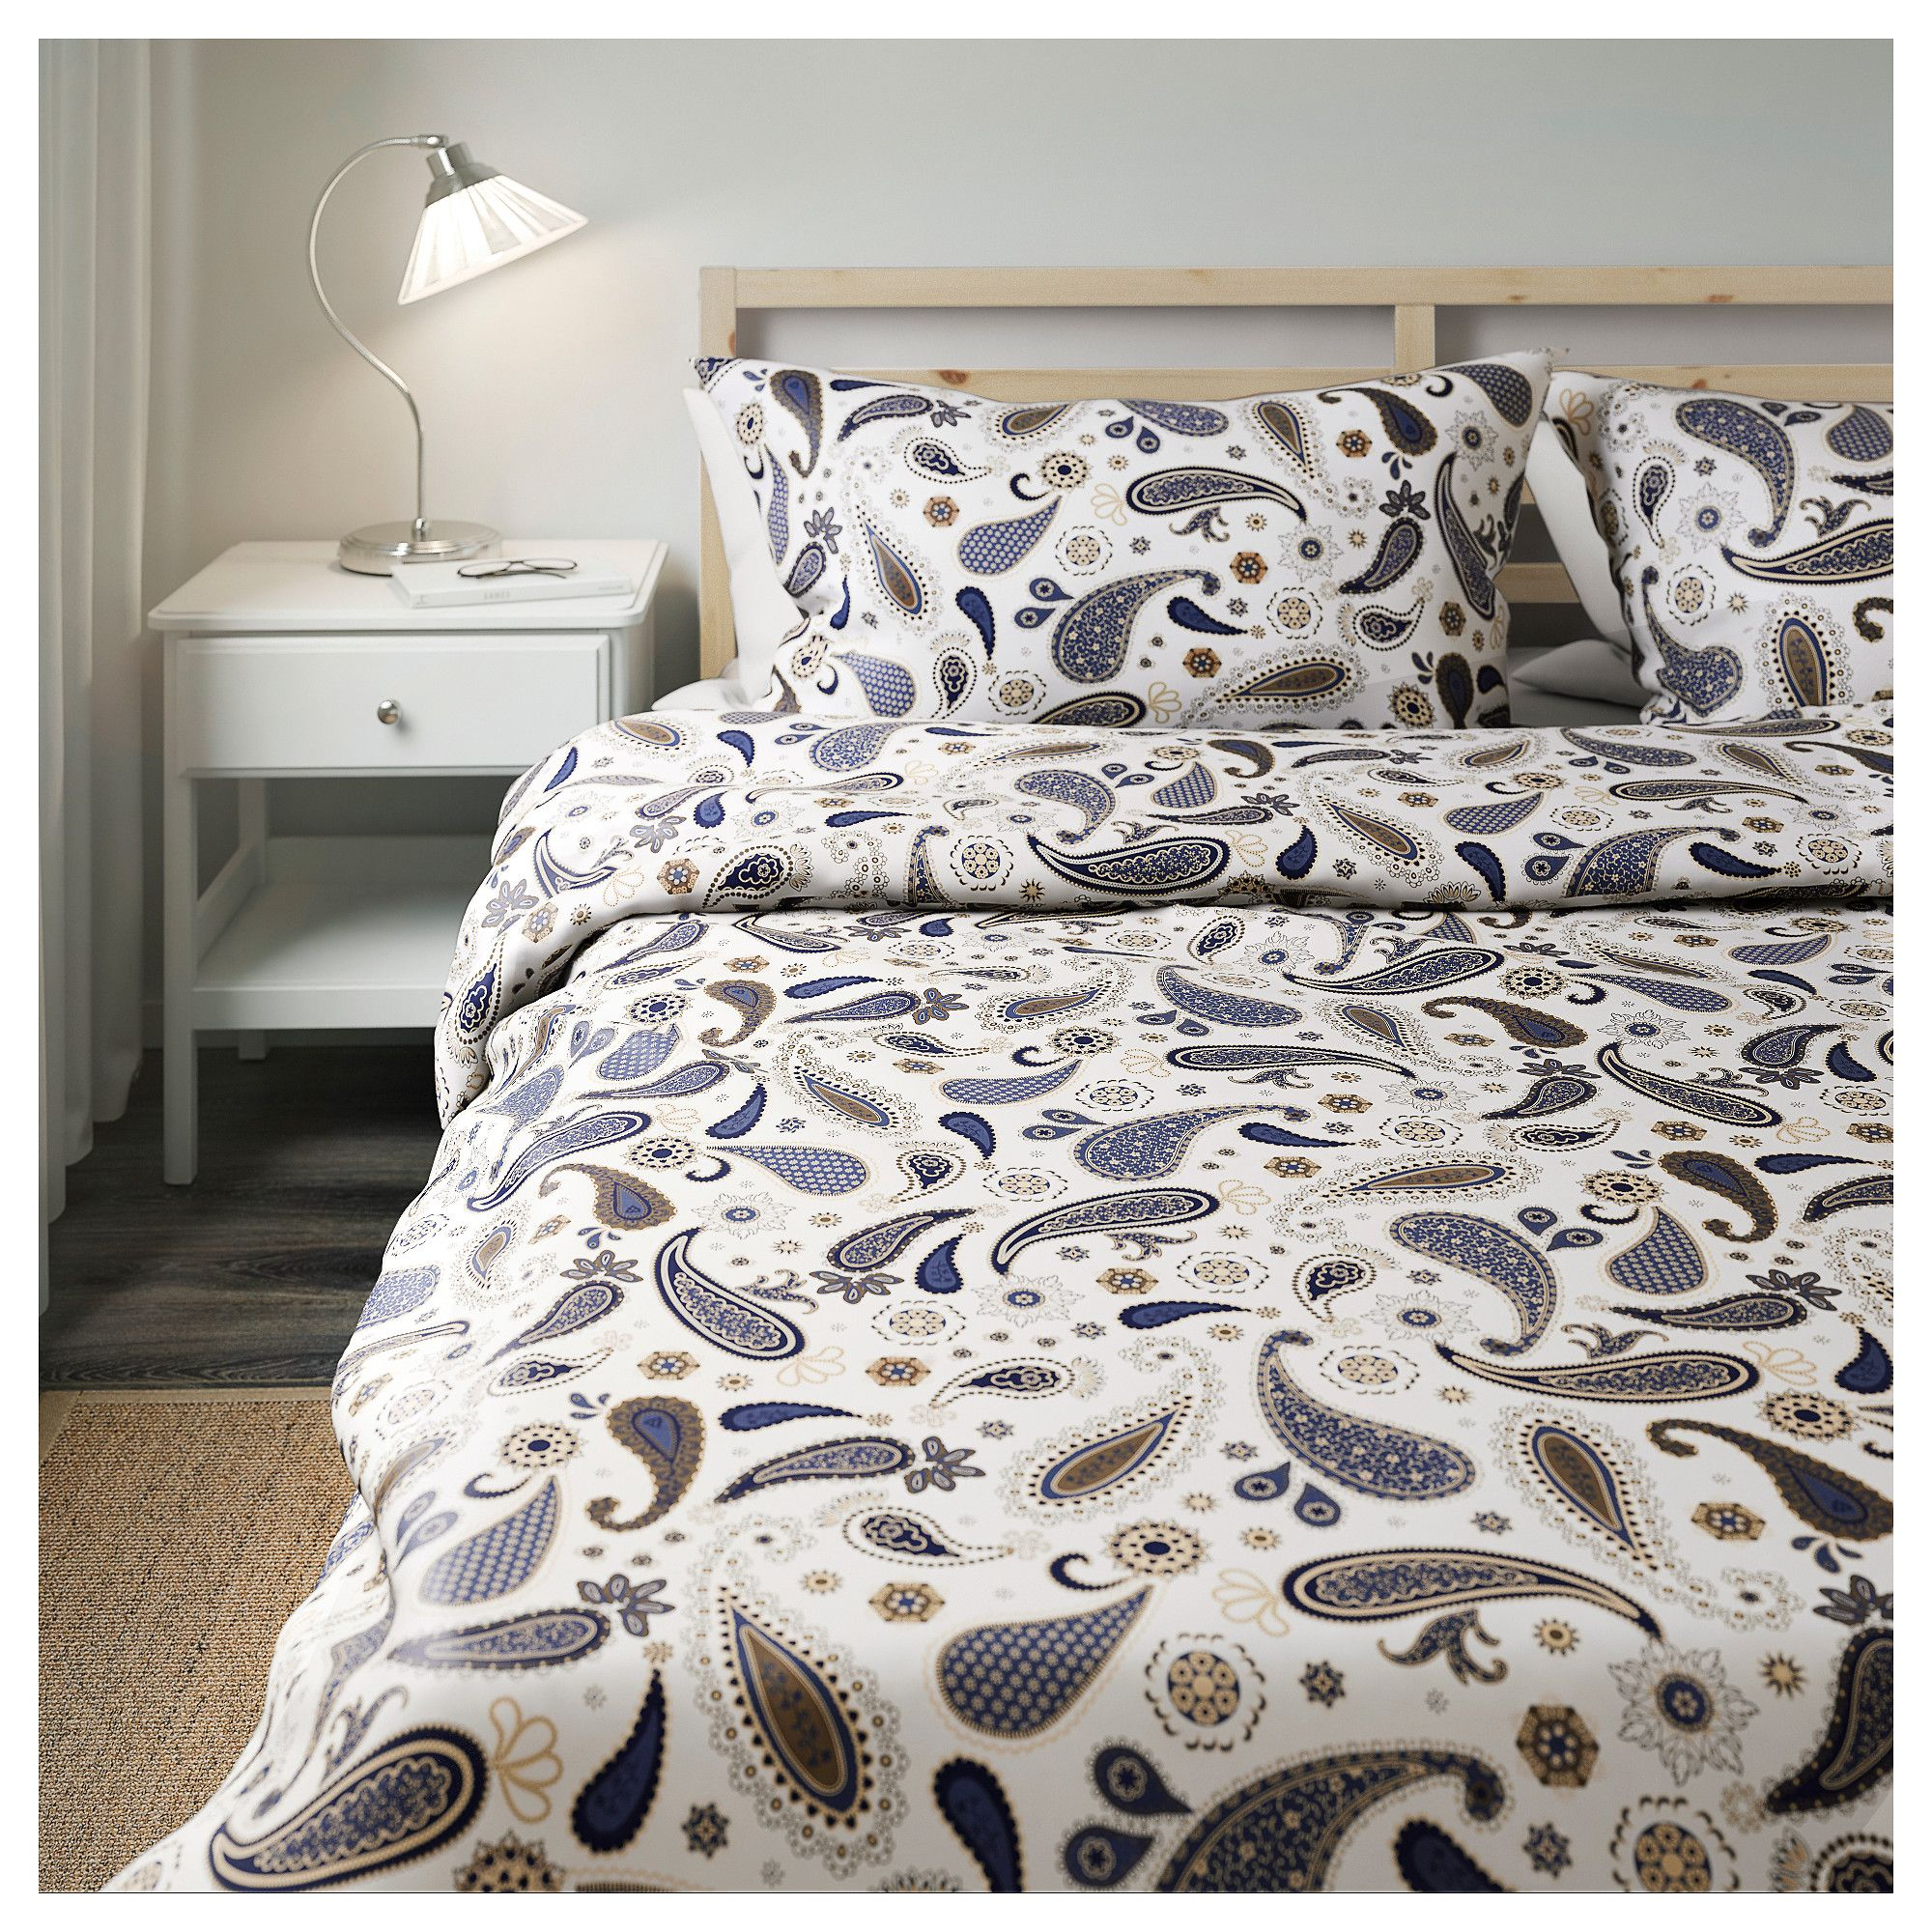 Ikea Sötblomster Duvet Cover And Pillowcases White Blue